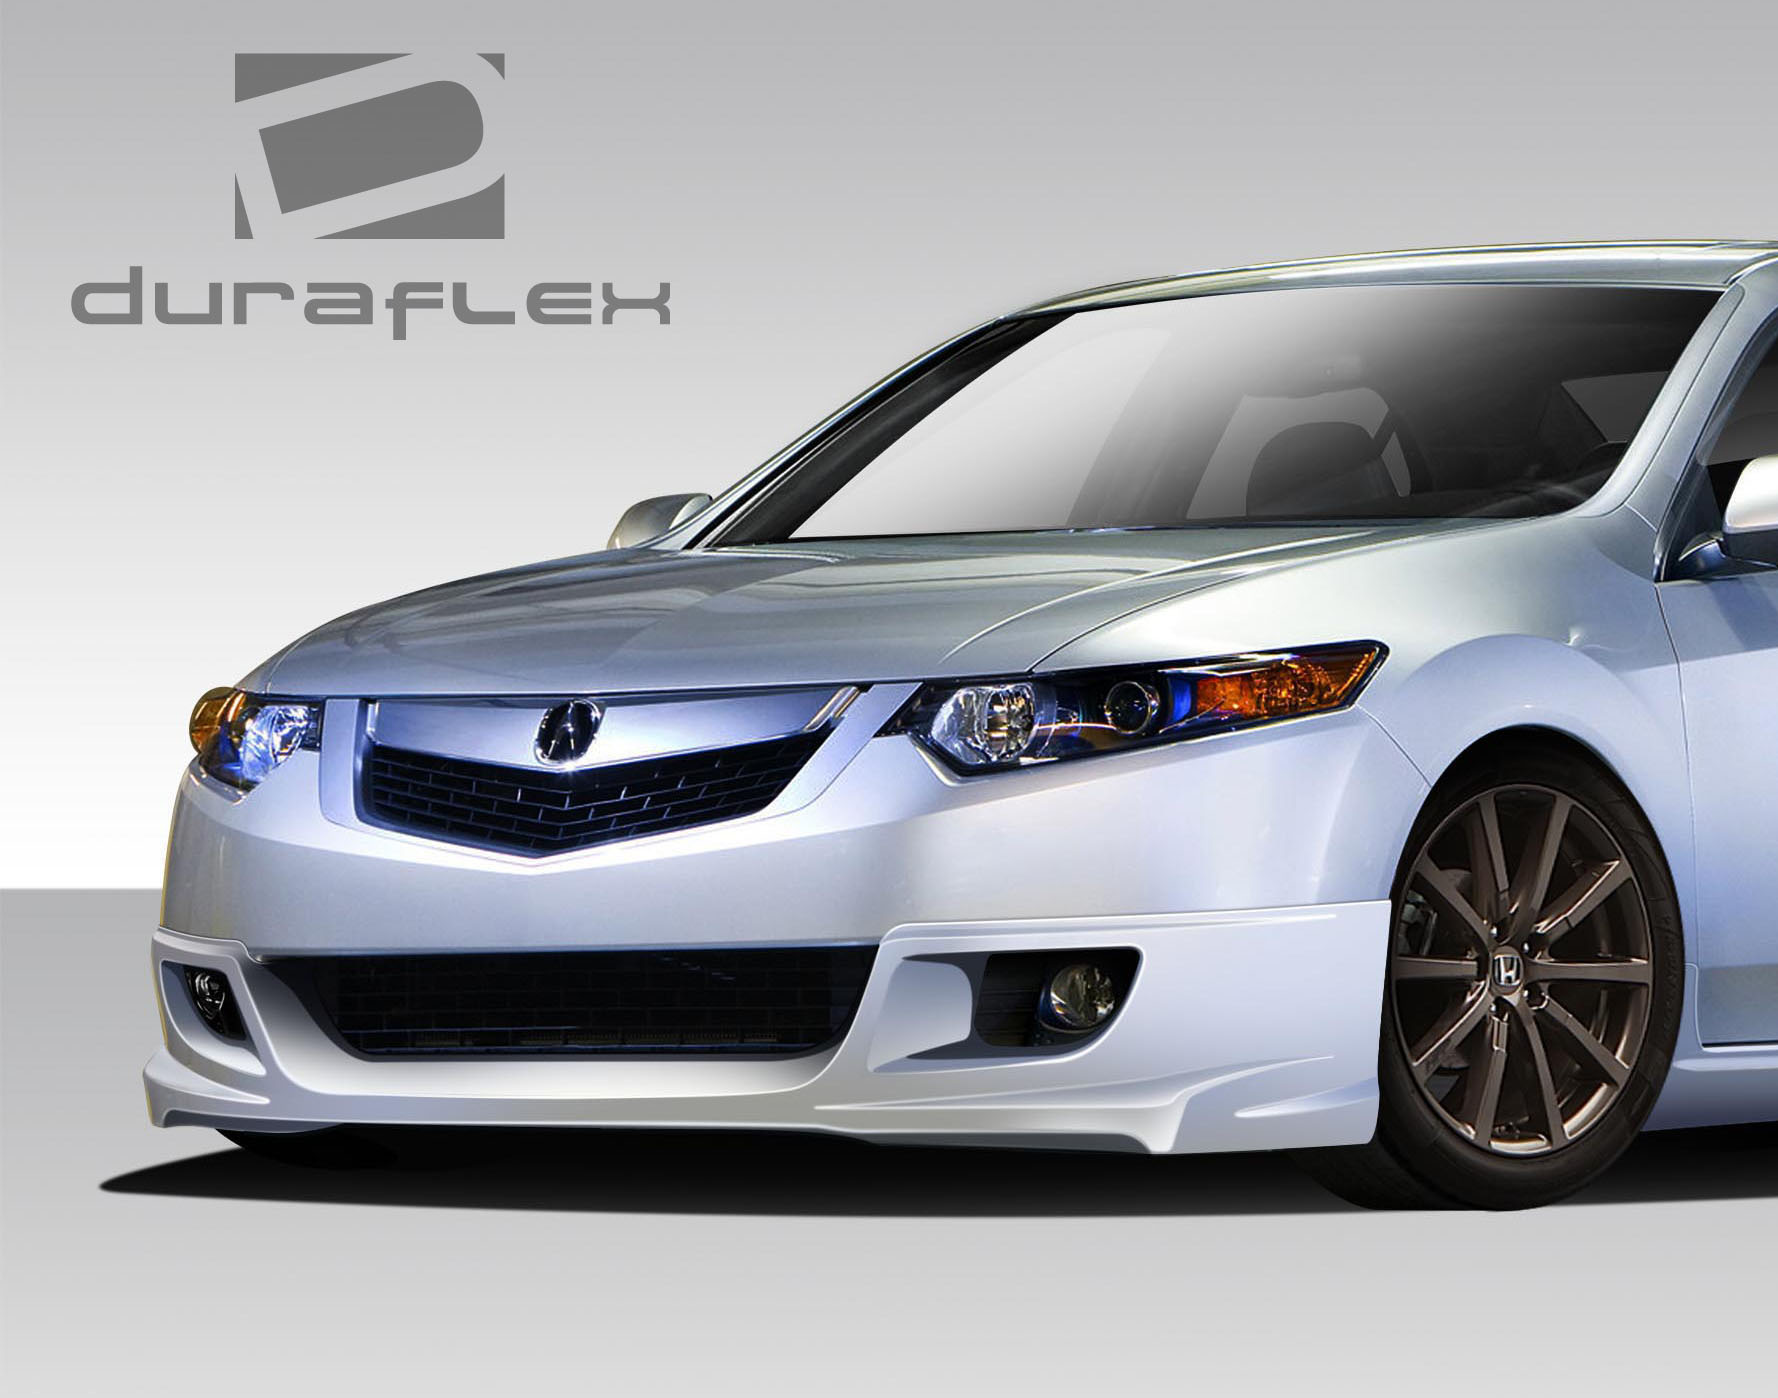 welcome to extreme dimensions    item group    2009-2010 acura tsx duraflex type m body kit